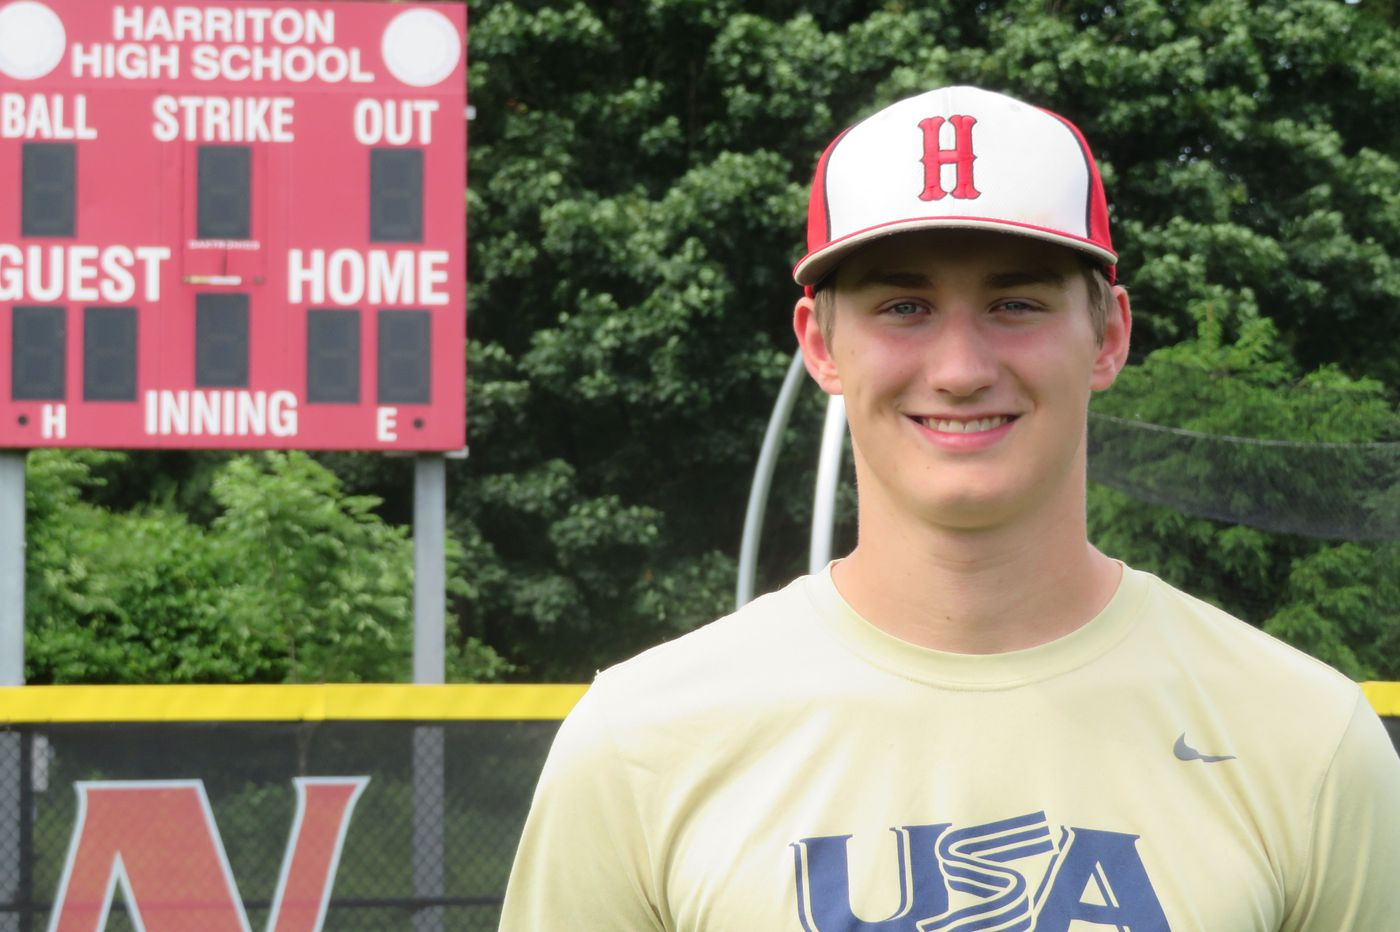 MLB draft: Harriton pitcher Jack Kochanowicz goes in third round to Angels